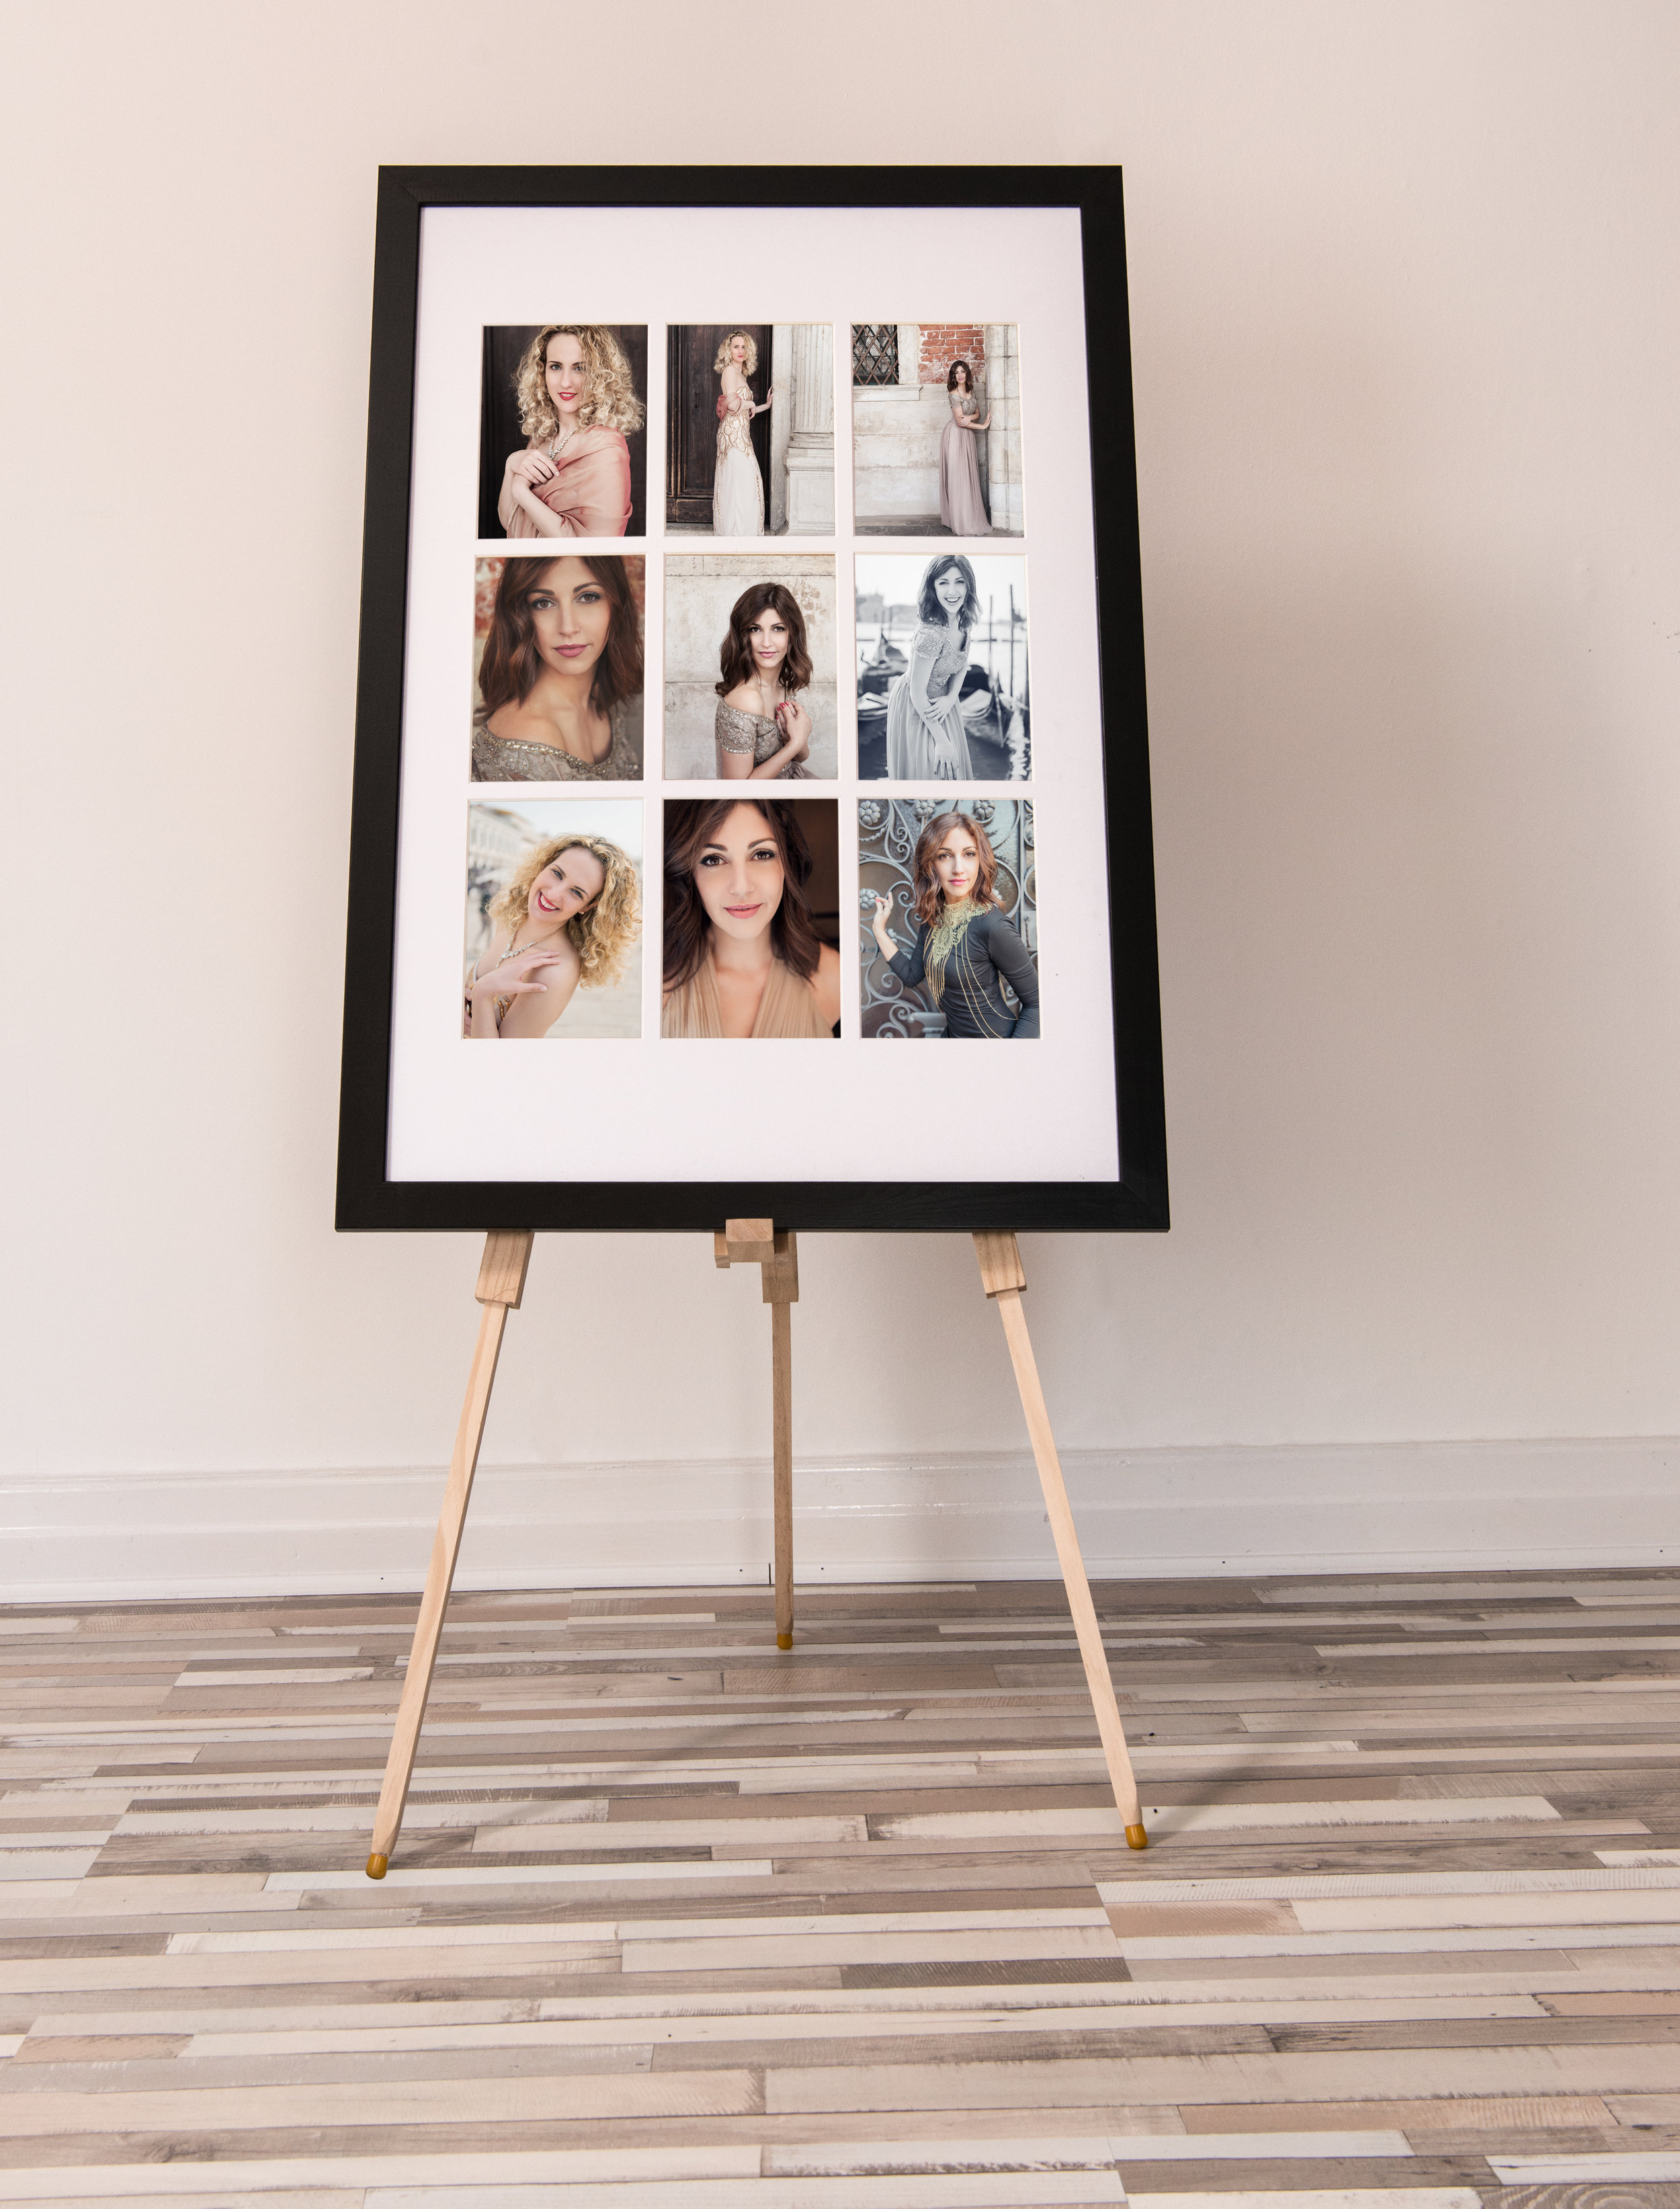 9 Up Portrait Gallery - A 9 up portrait gallery is a stunning way to display your photos. Please get in touch for more details.